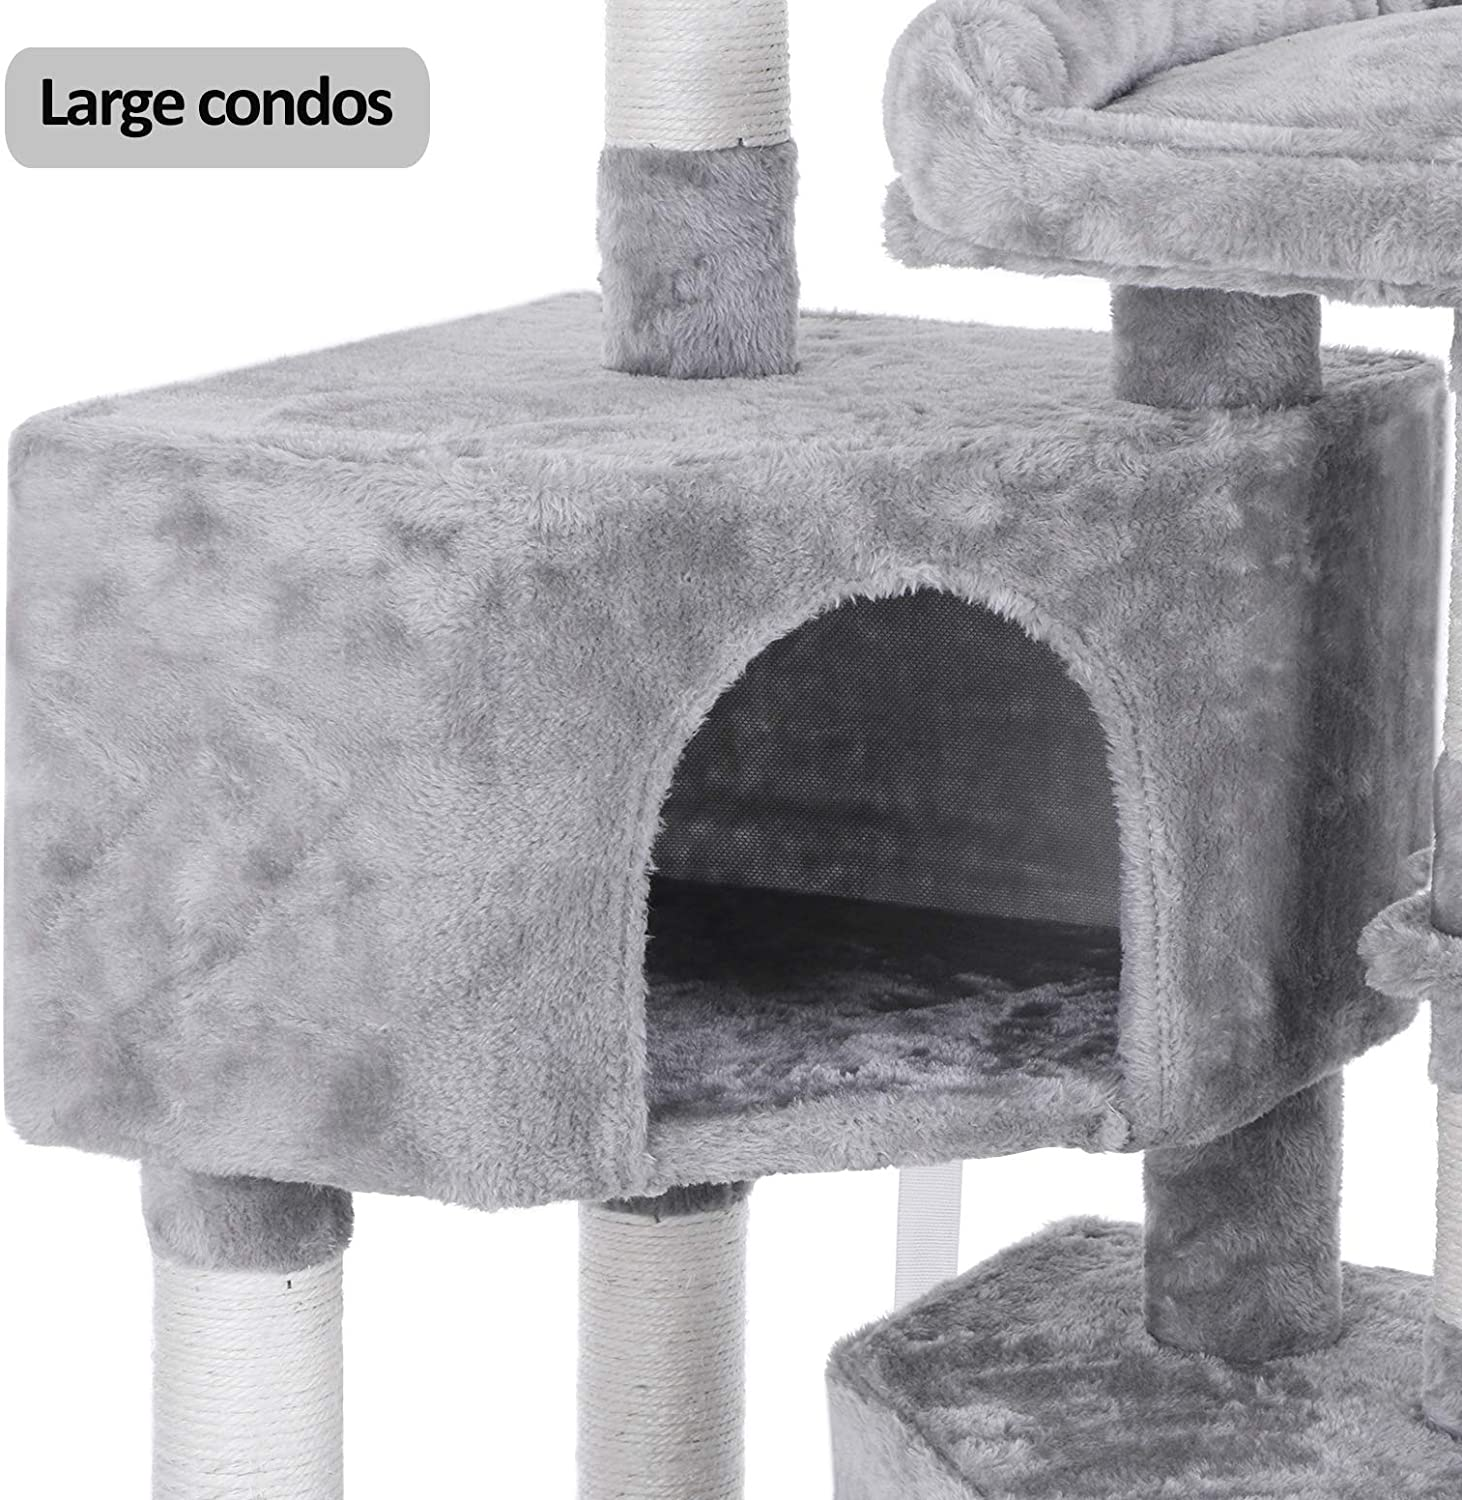 BEWISHOME Multi-Level Cat Tree Condo with Sisal Scratching Posts, Perches, Houses, Hammock and Baskets, Cat Tower Furniture Kitty Activity Center Kitten Play House Light Grey MMJ05G : Pet Supplies